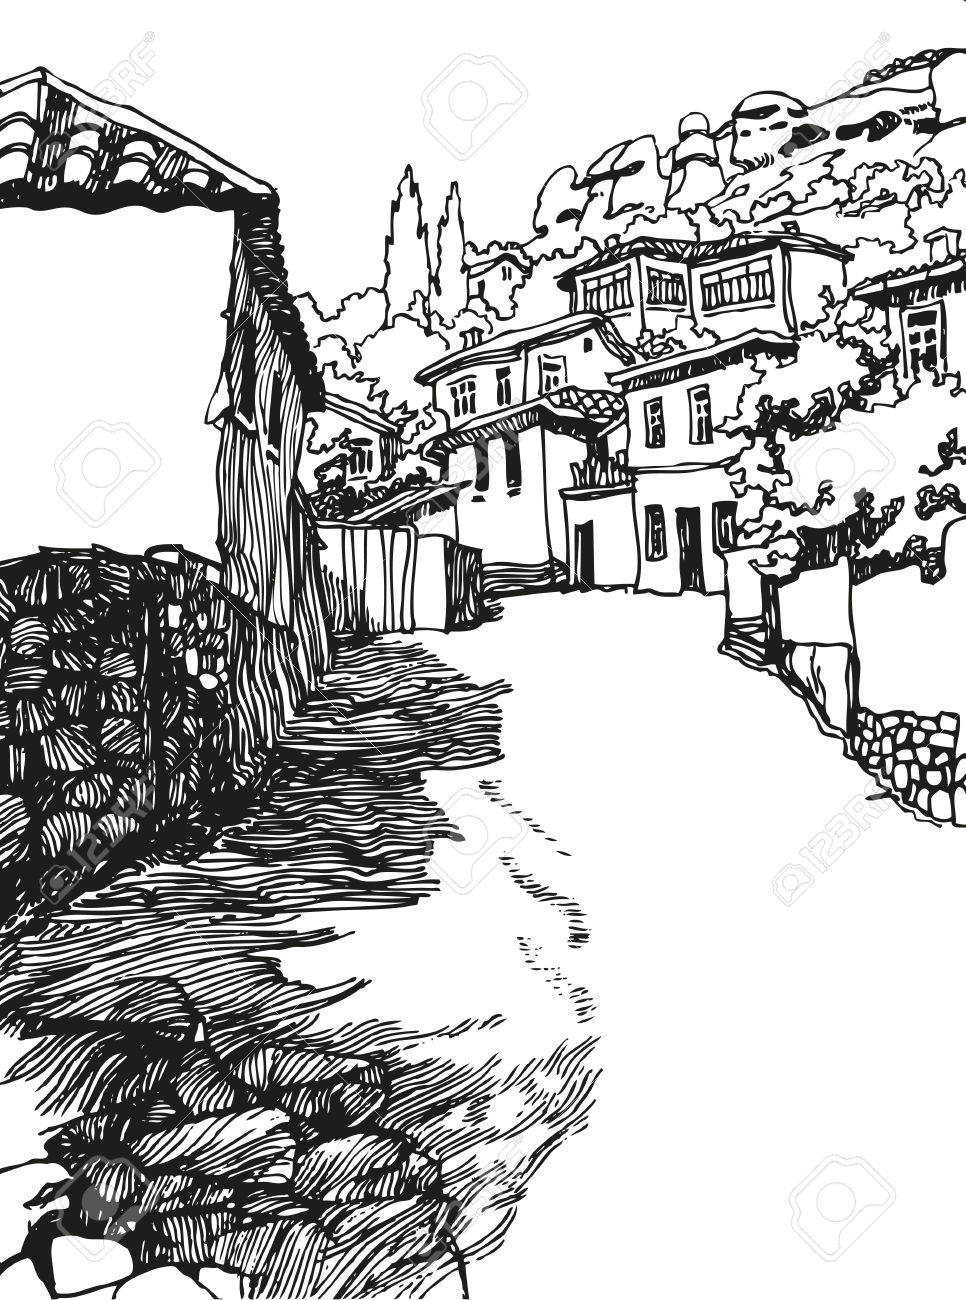 966x1300 Landscape Black And White Drawing